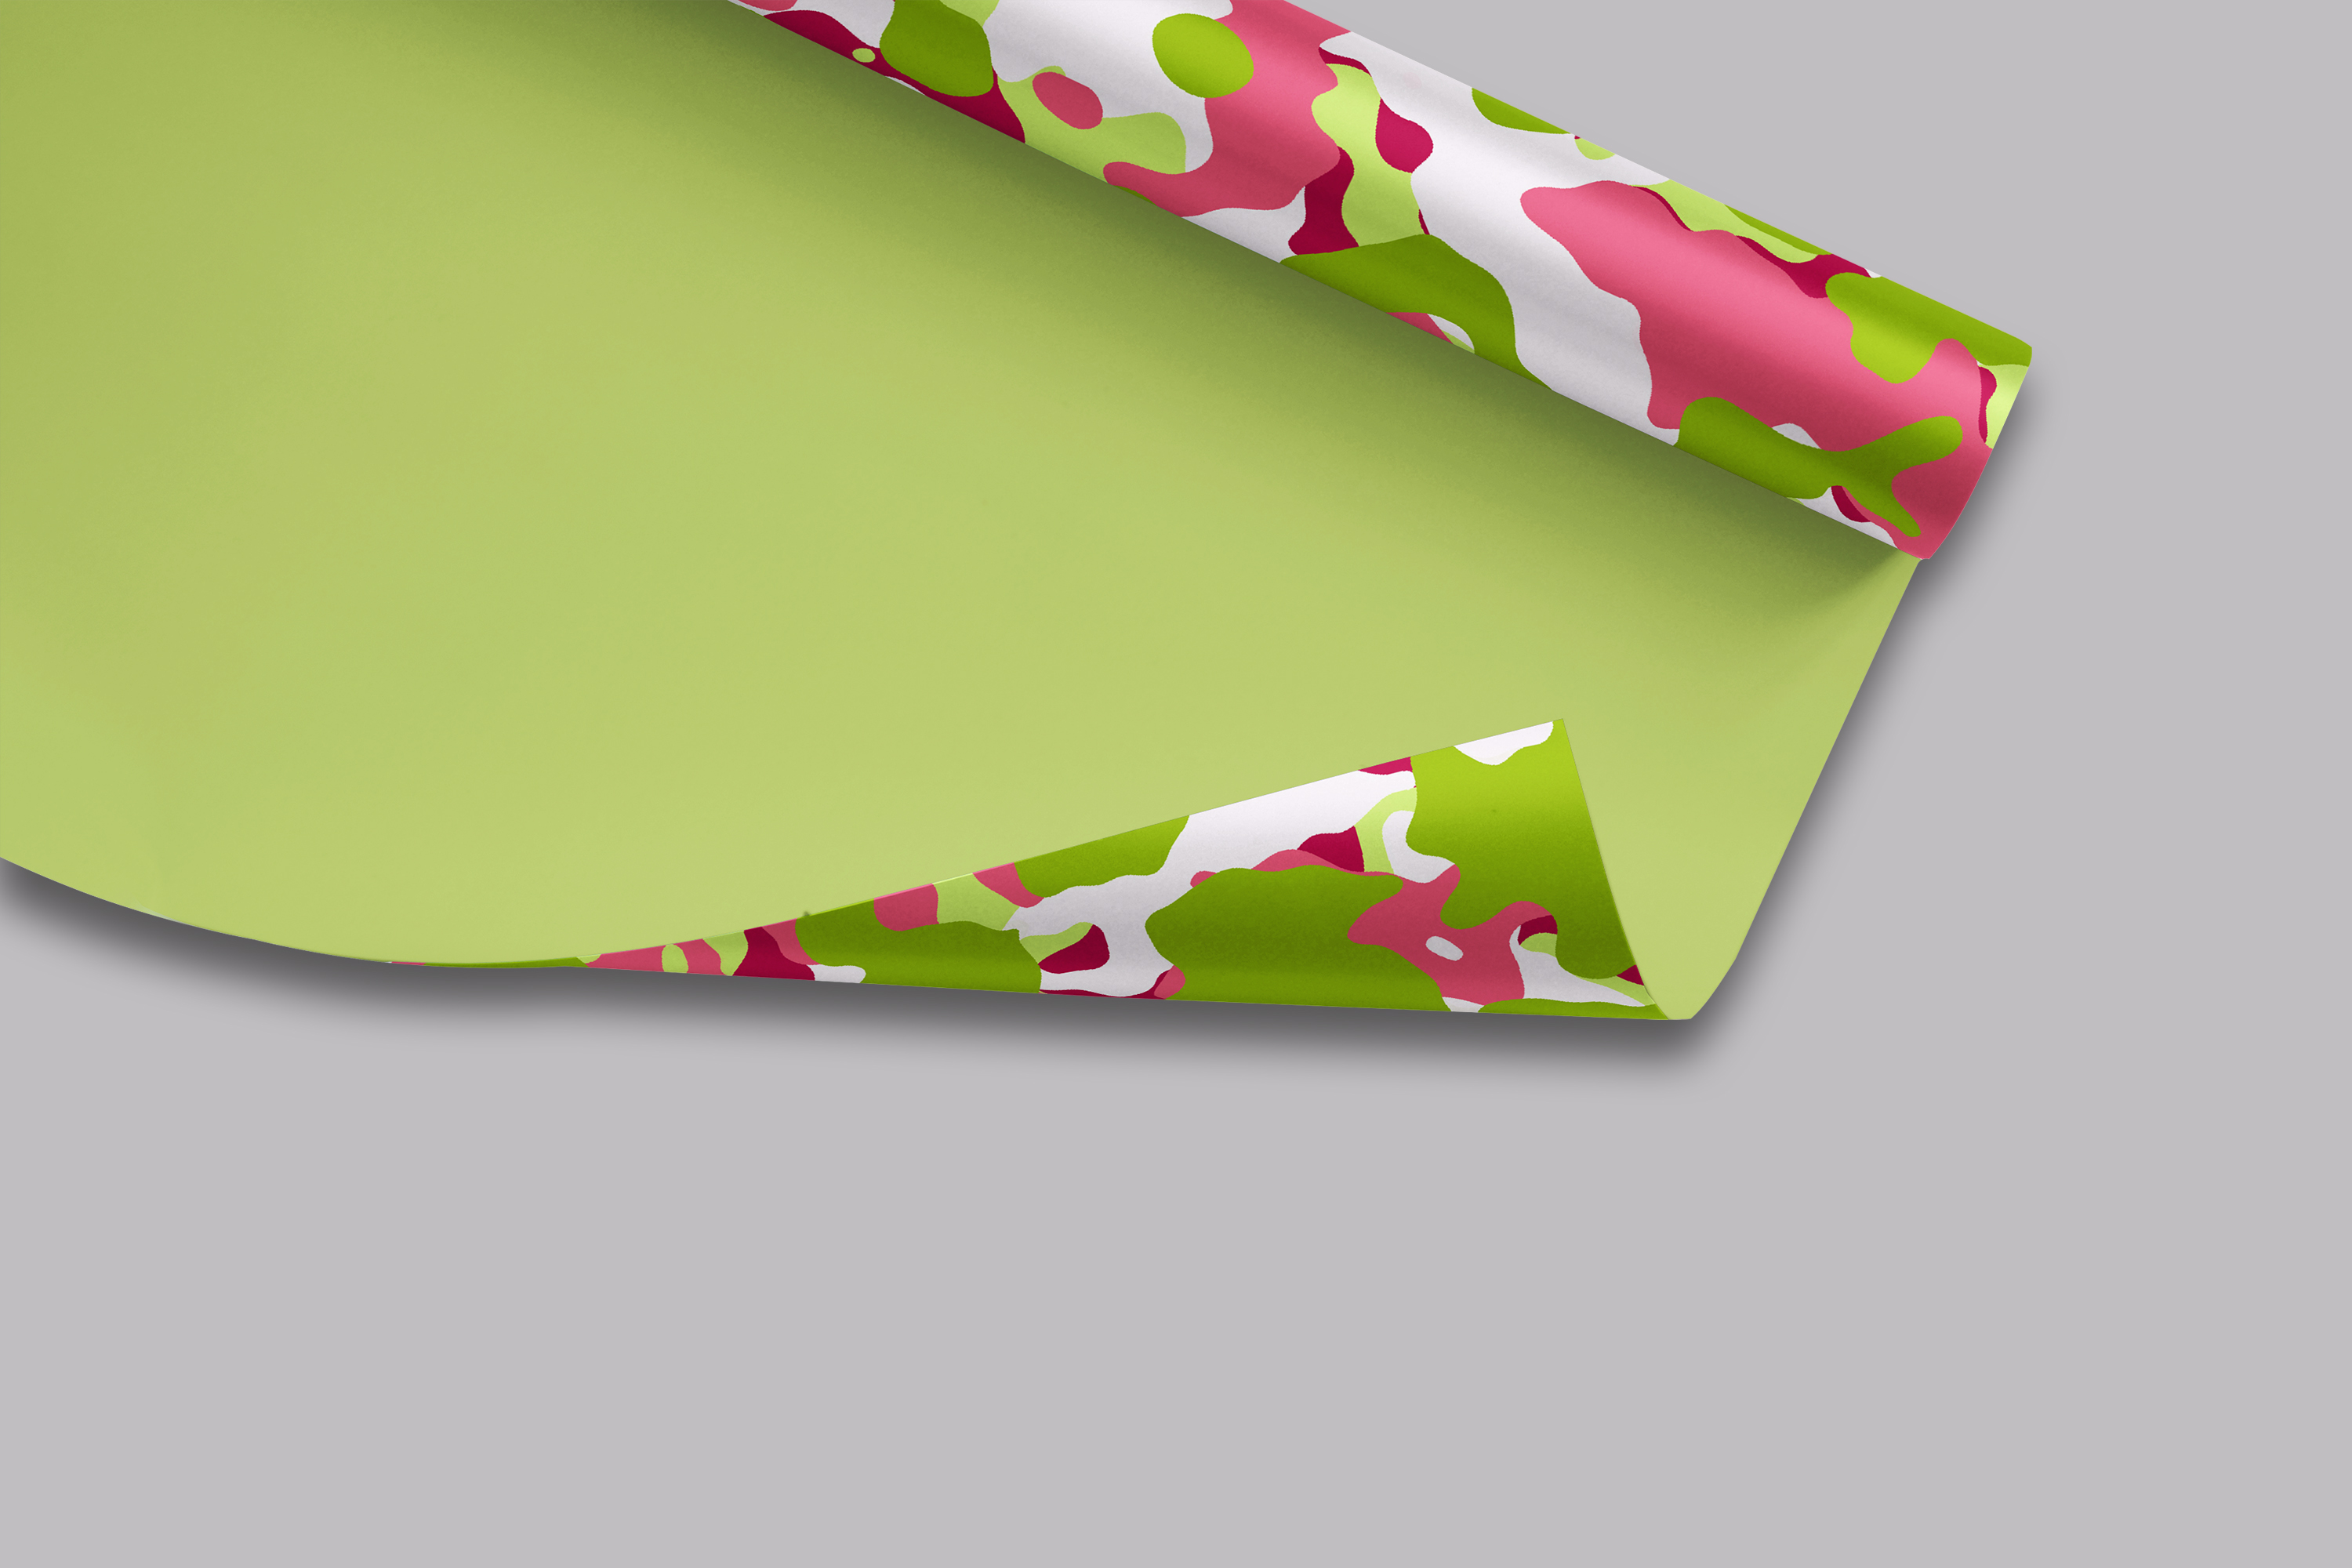 40 Alternative Camouflage Paper Designs example image 12